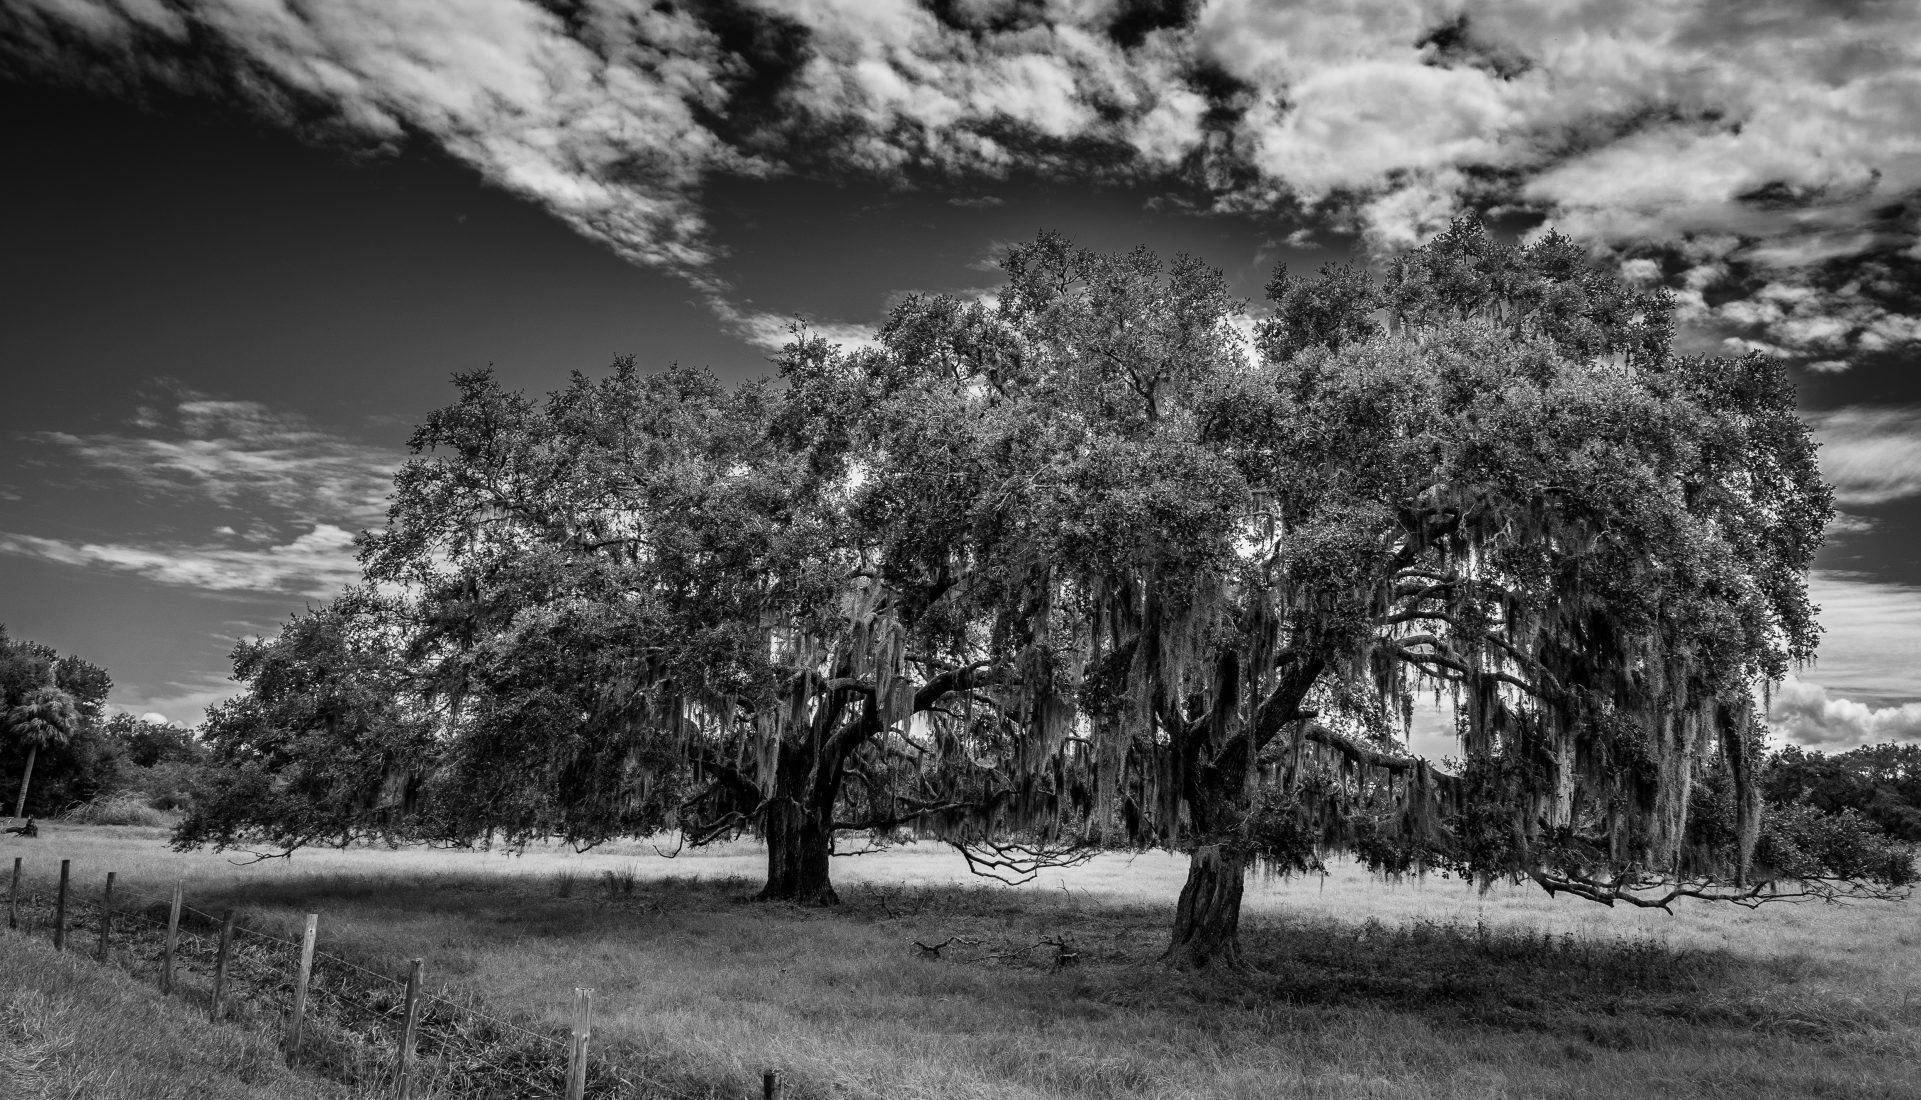 The Florida Landscape – Live Oak Trees